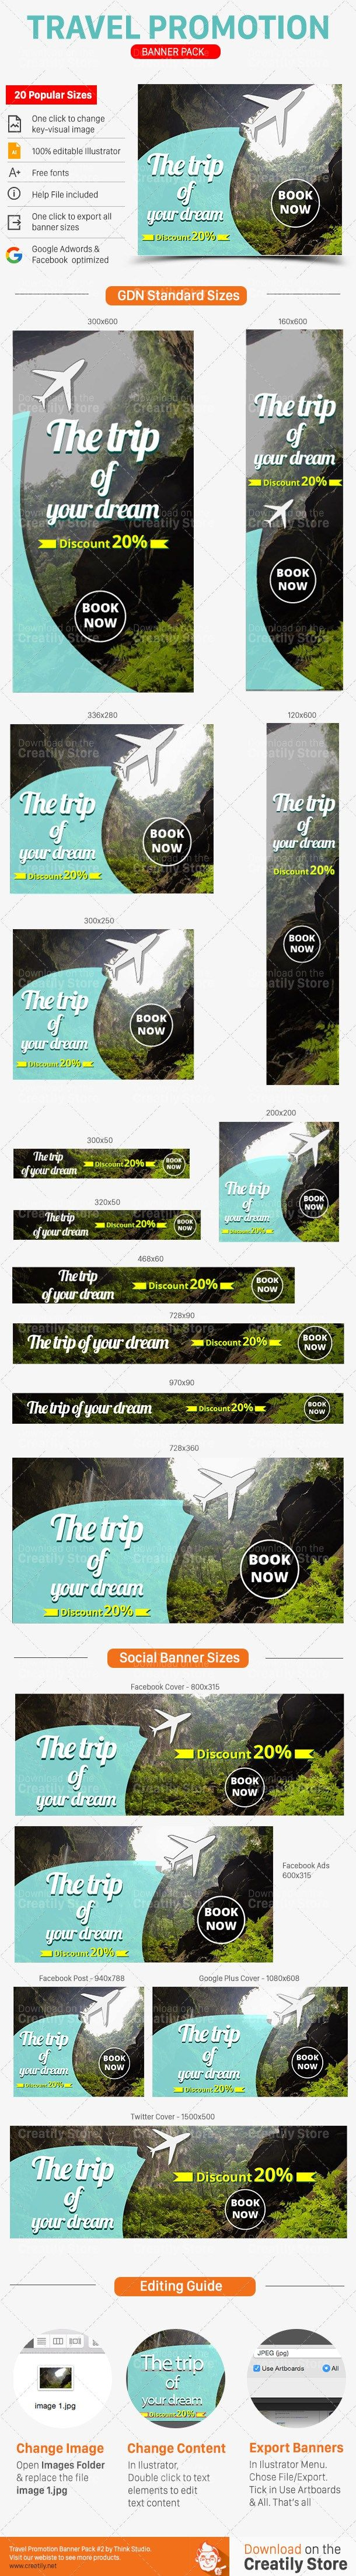 Promote your Travel Services with this great looking Travel Banner Ads Set.  Tag: travel, trip, banners, promotion, set, google, adwords, gdn, facebook ad, template, ad sizes, vacation, website banner, marketing, banner set, banner pack